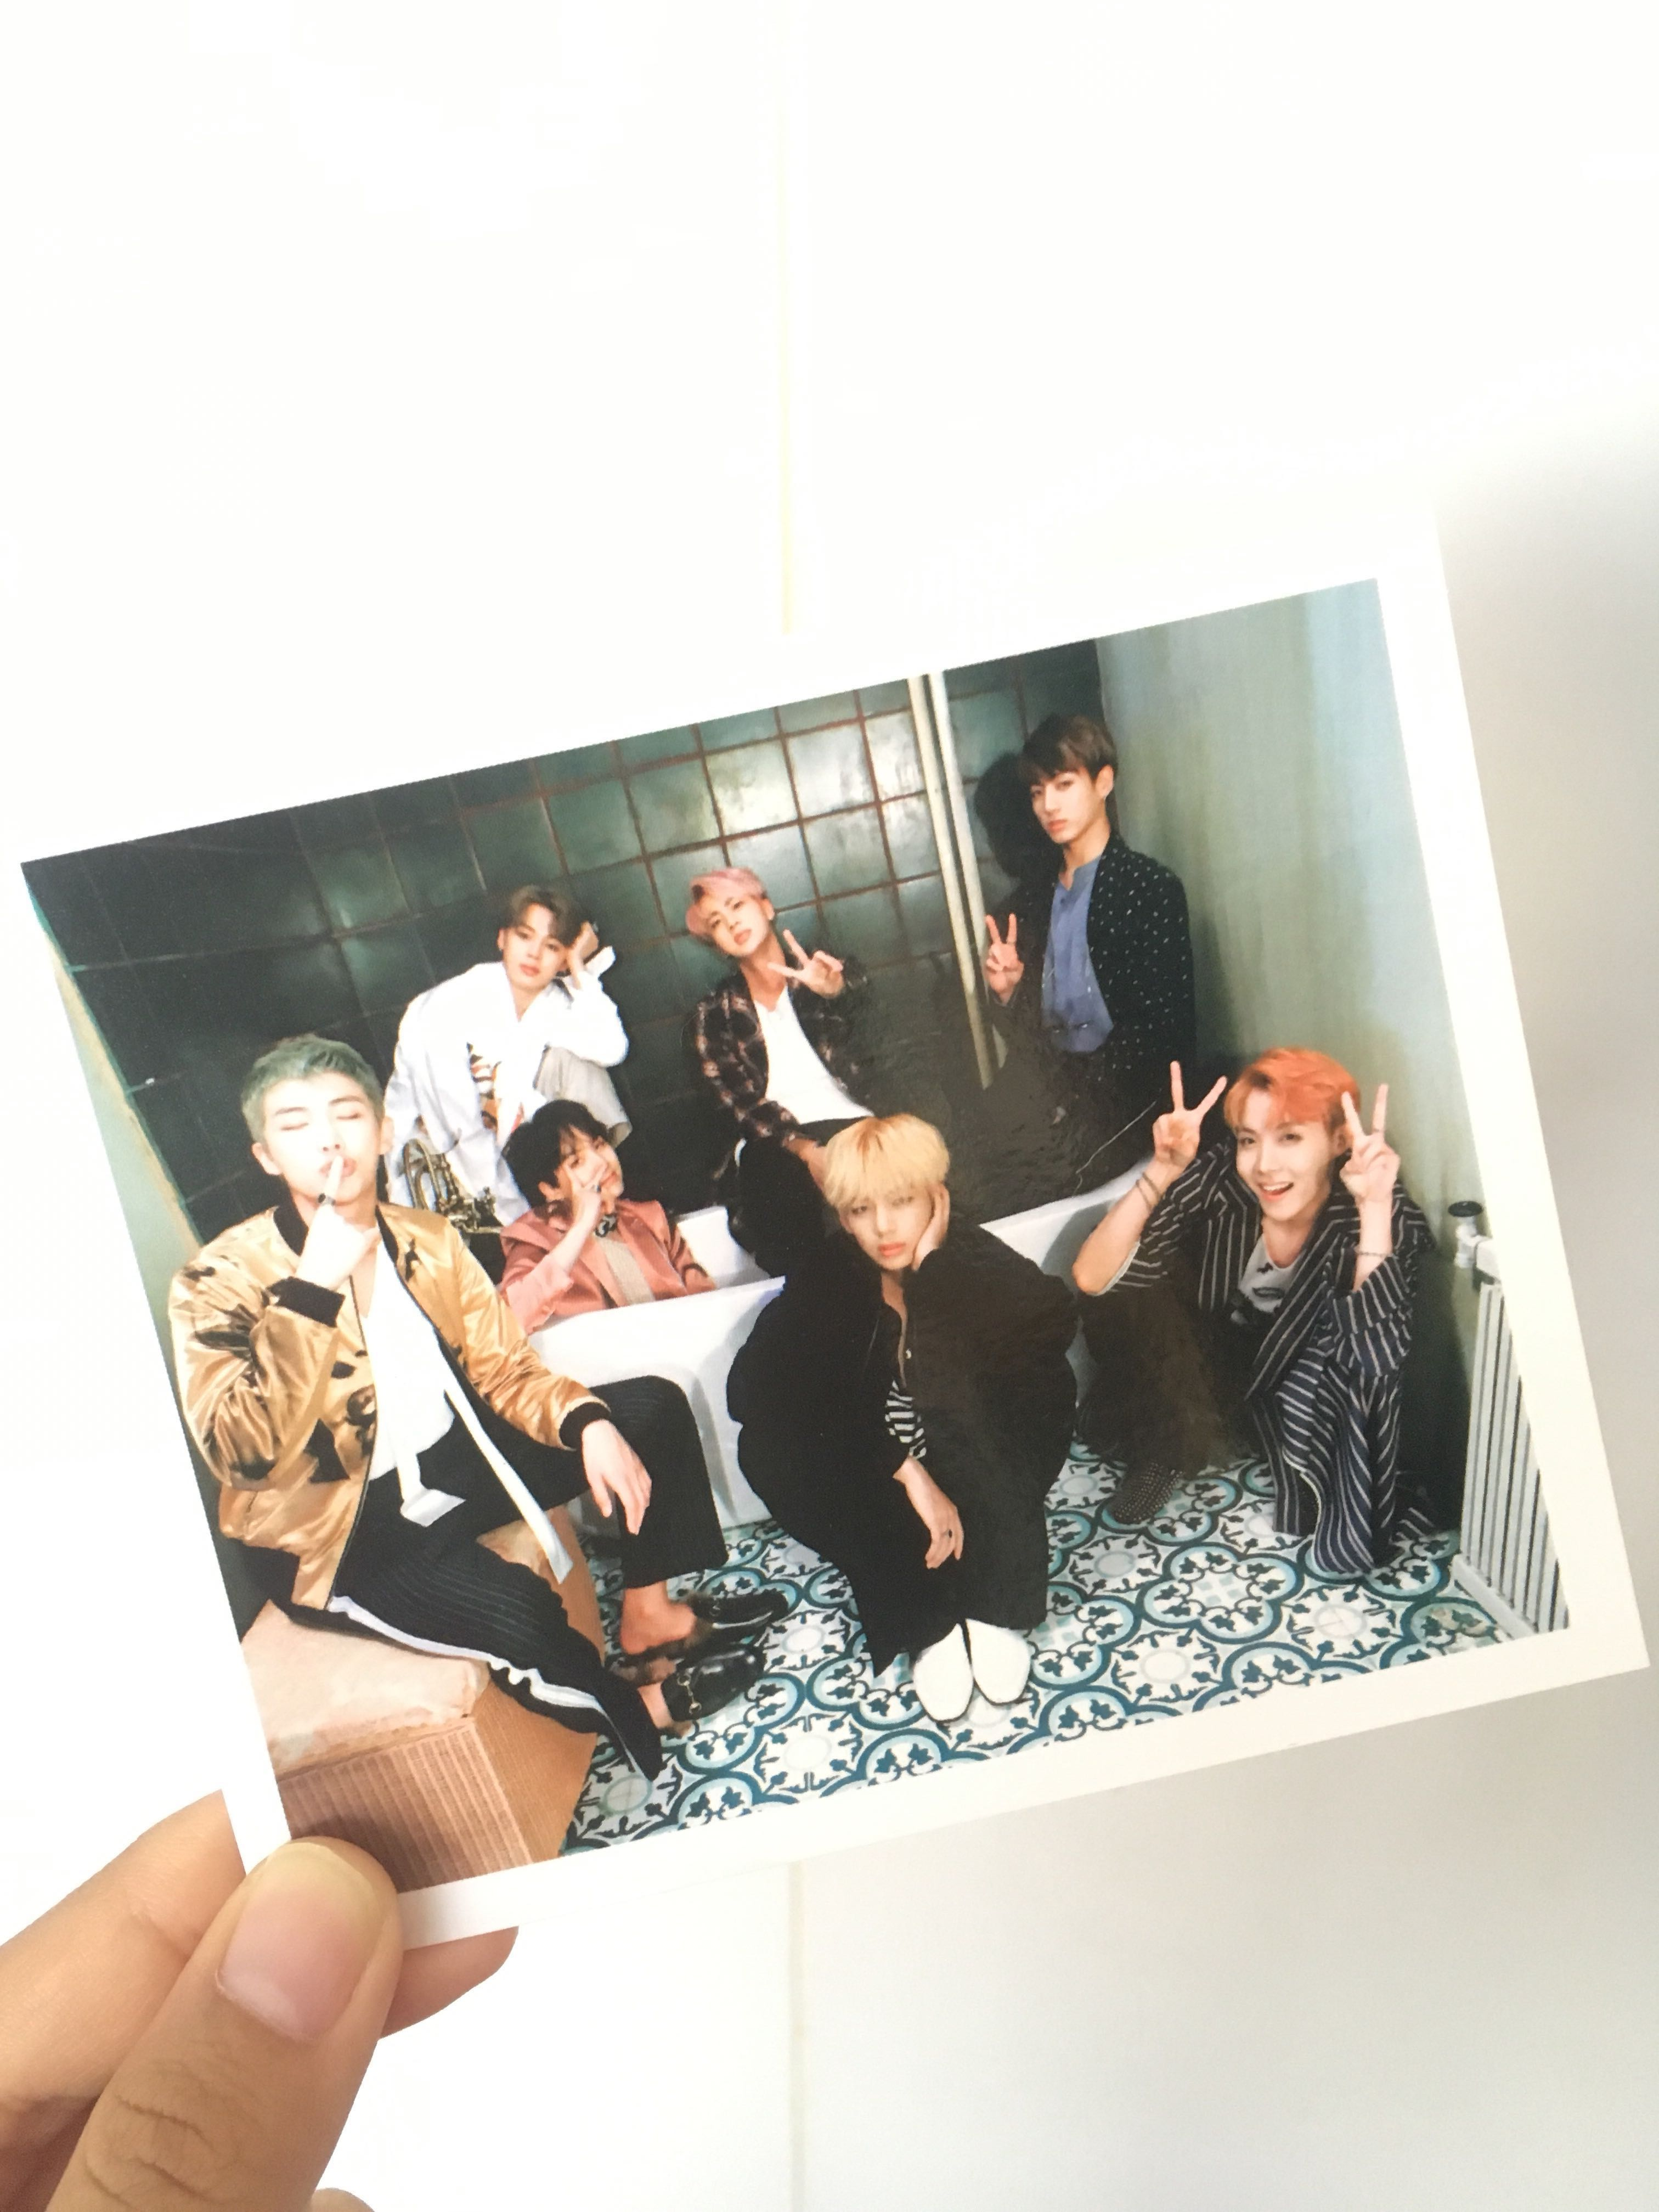 wings group photocard 1528115515 c39d3cd3